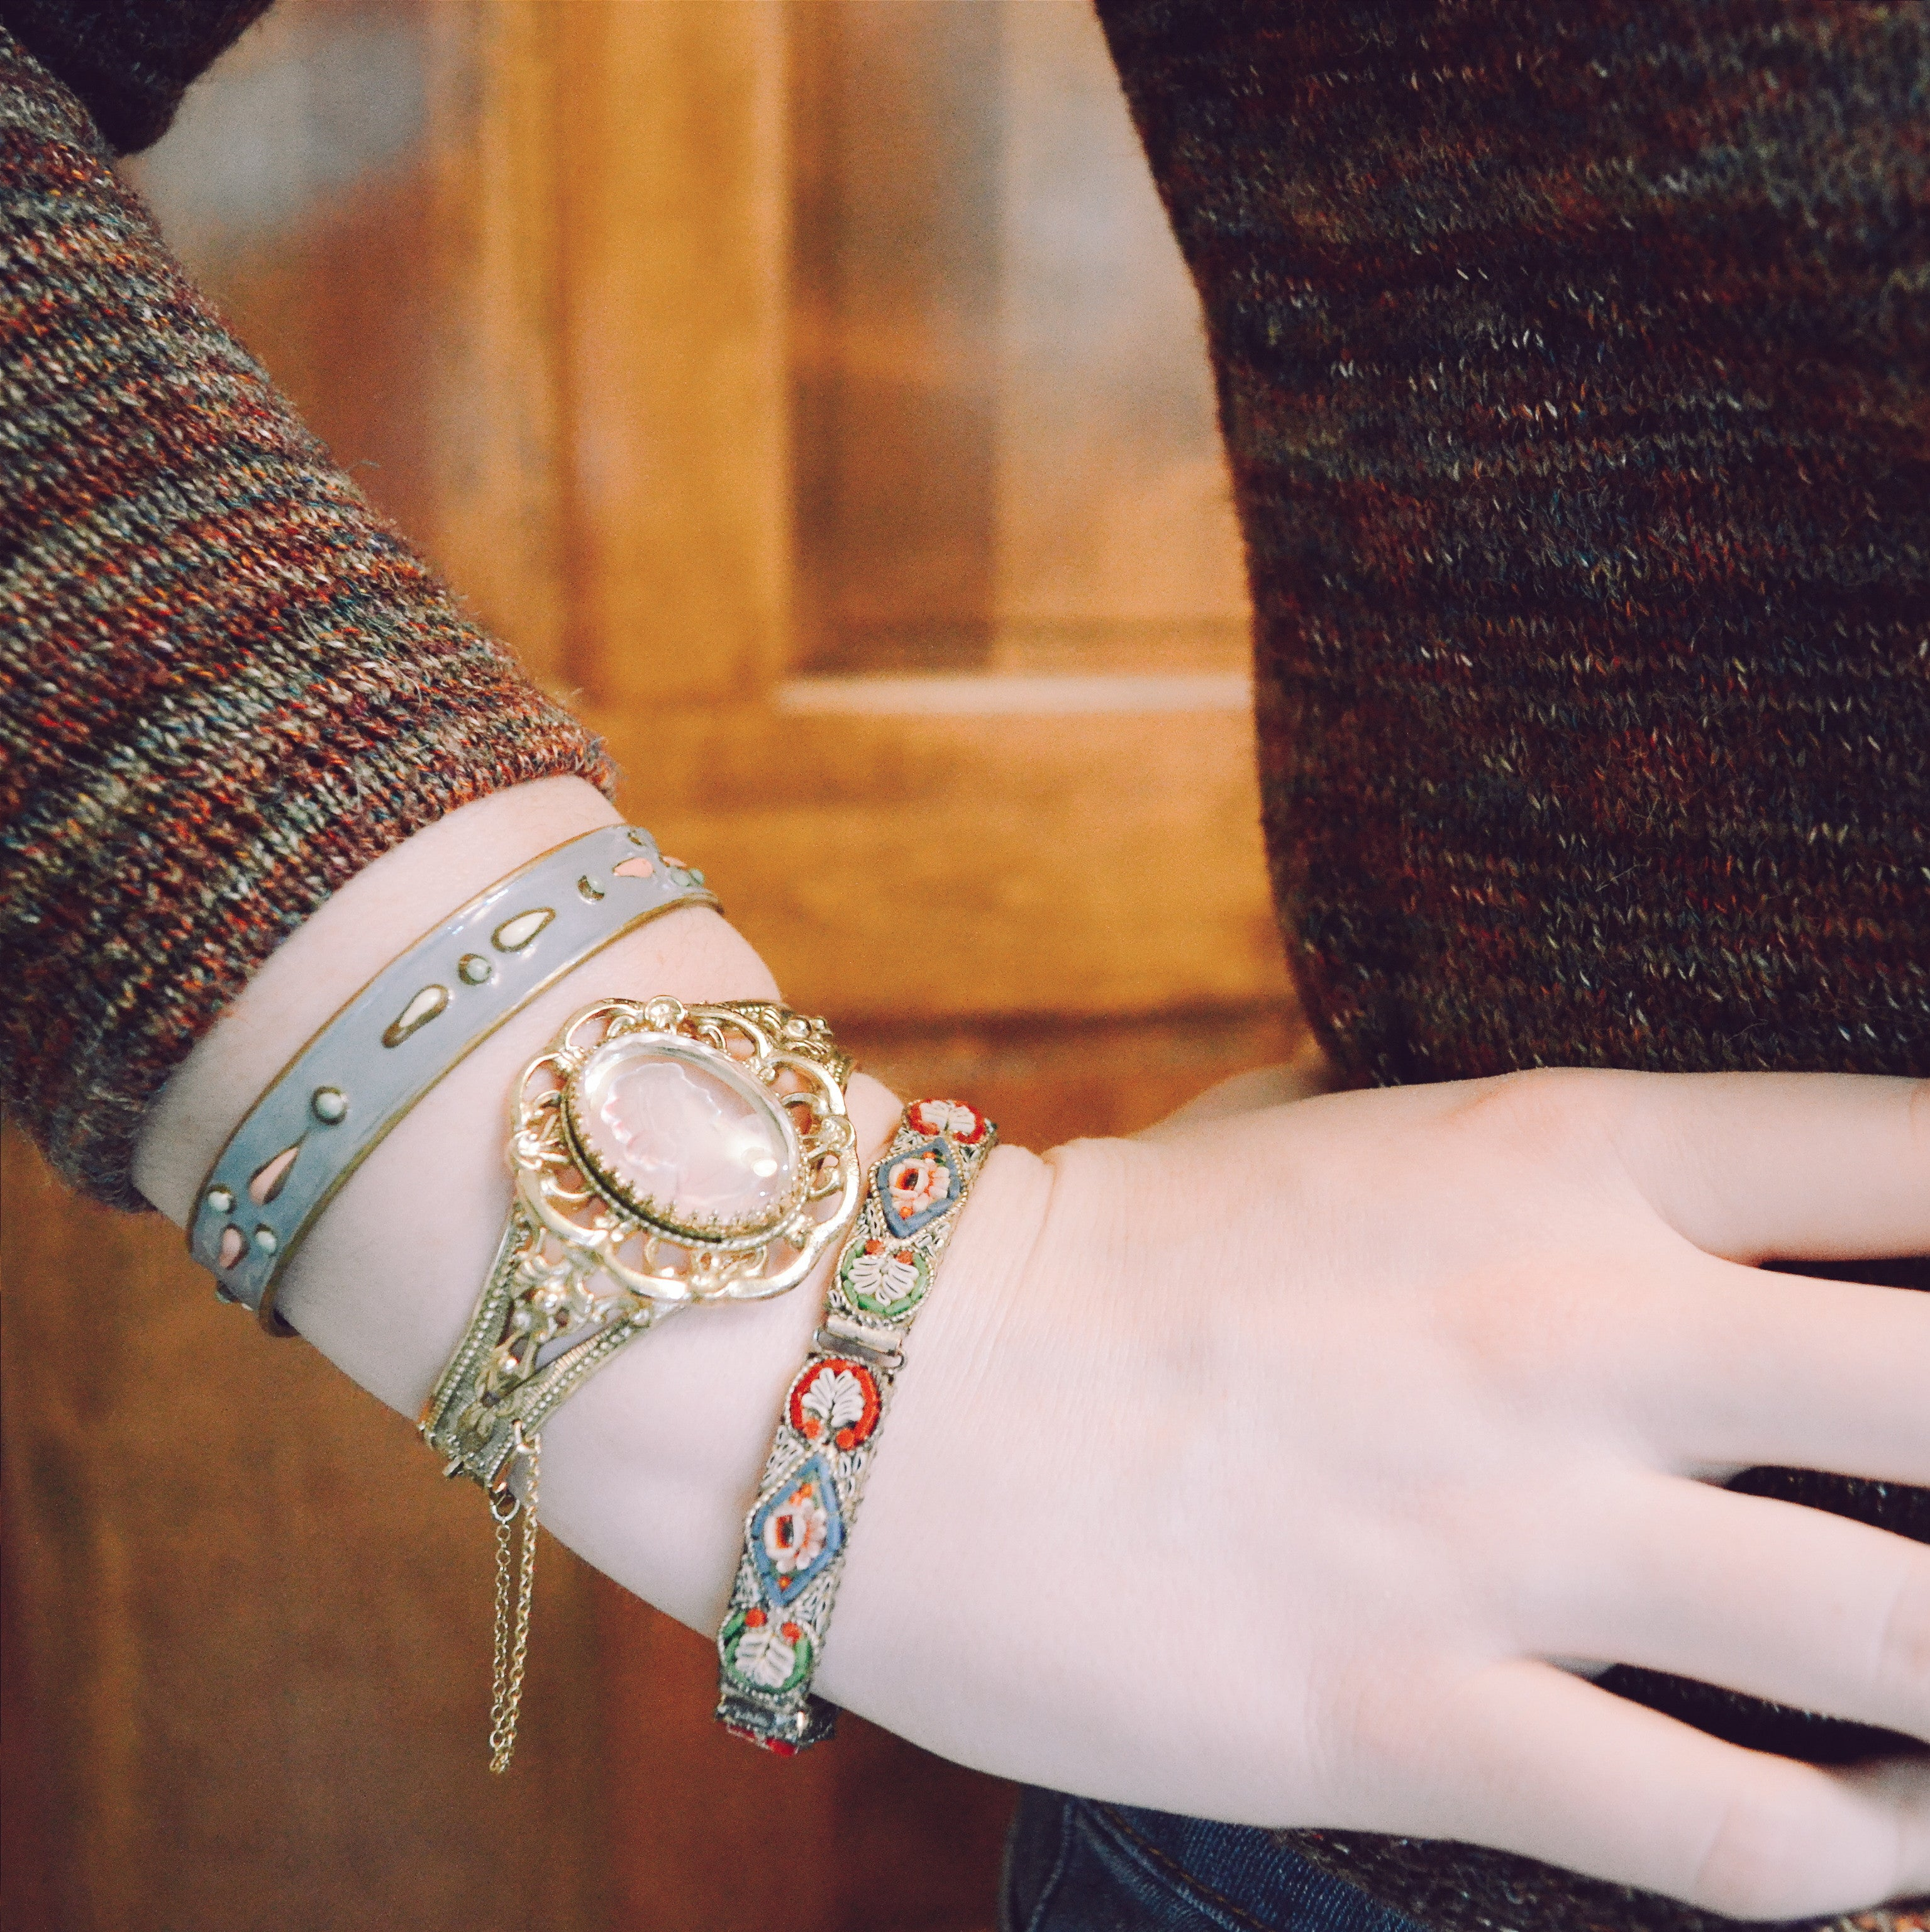 how to style bracelets, mixing vintage with modern, vintage bracelets, stacking bracelets